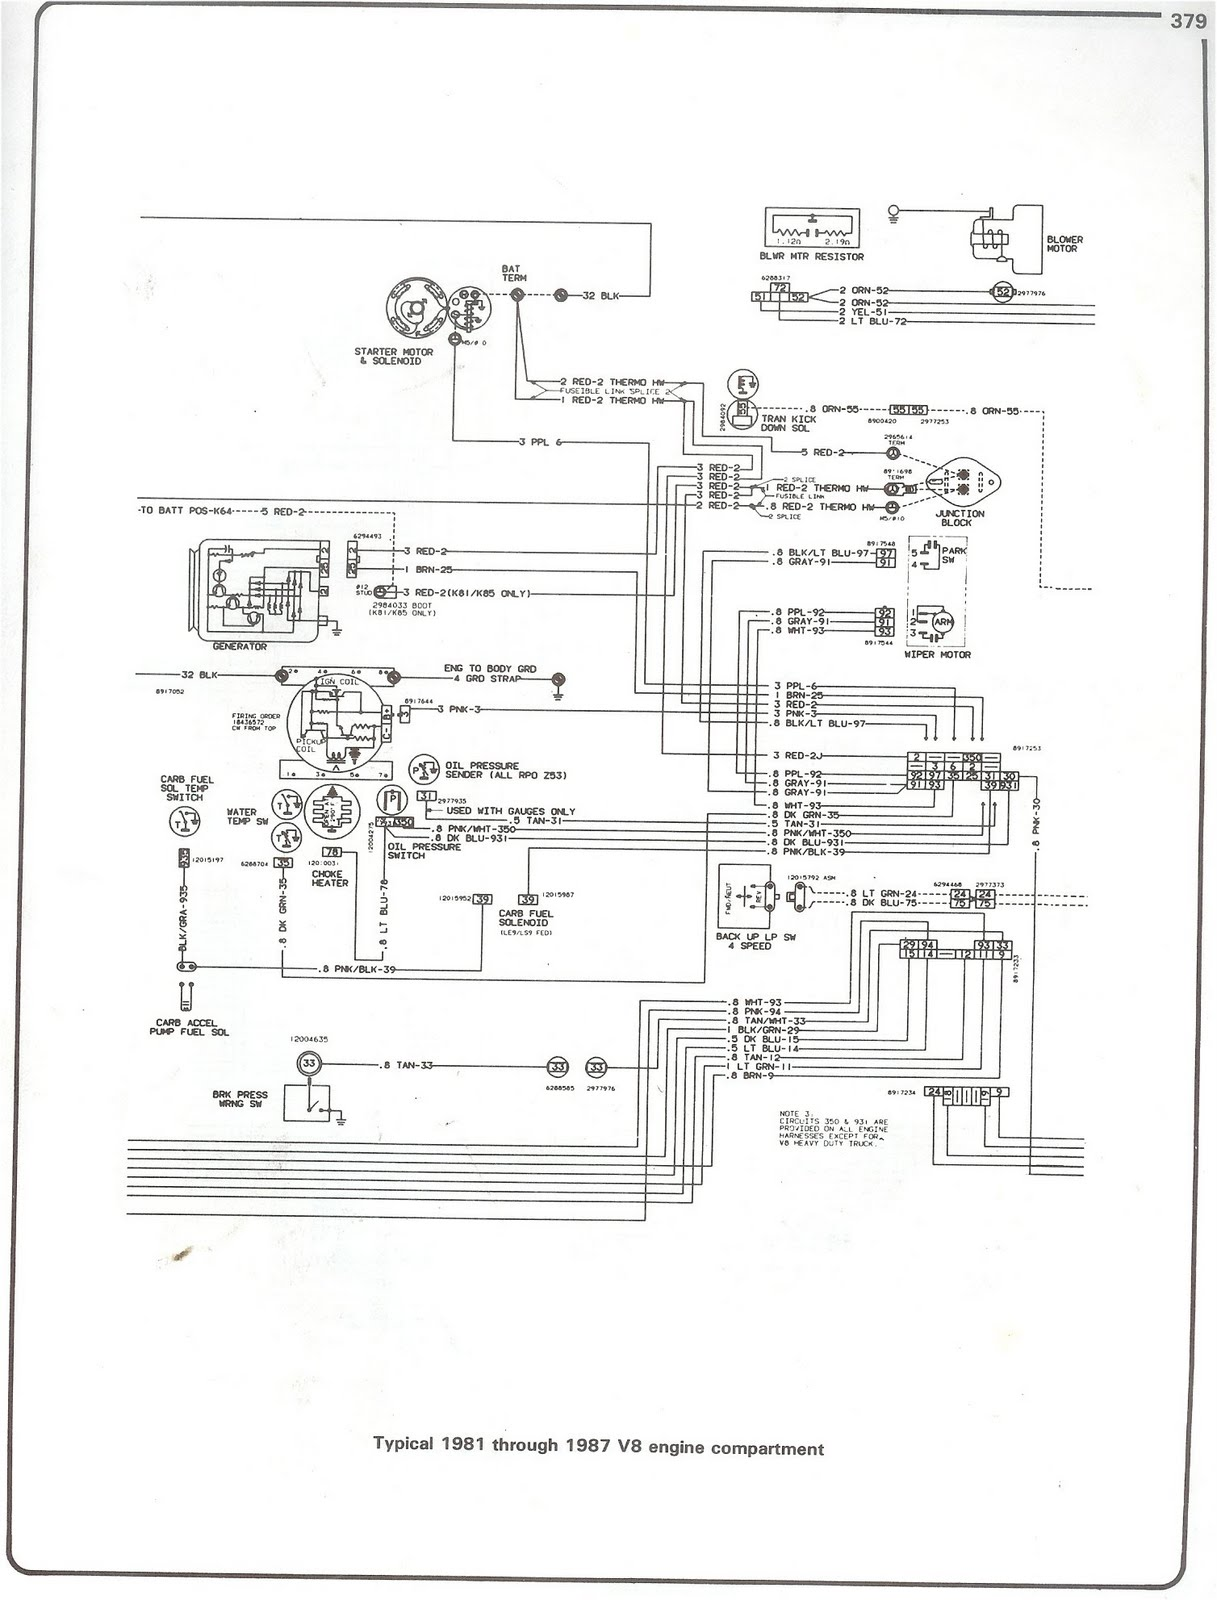 81 87_chevy_truck_V8_engine bulk head pinout diagram 87 r10 and 88 suburbans the 1947  at crackthecode.co